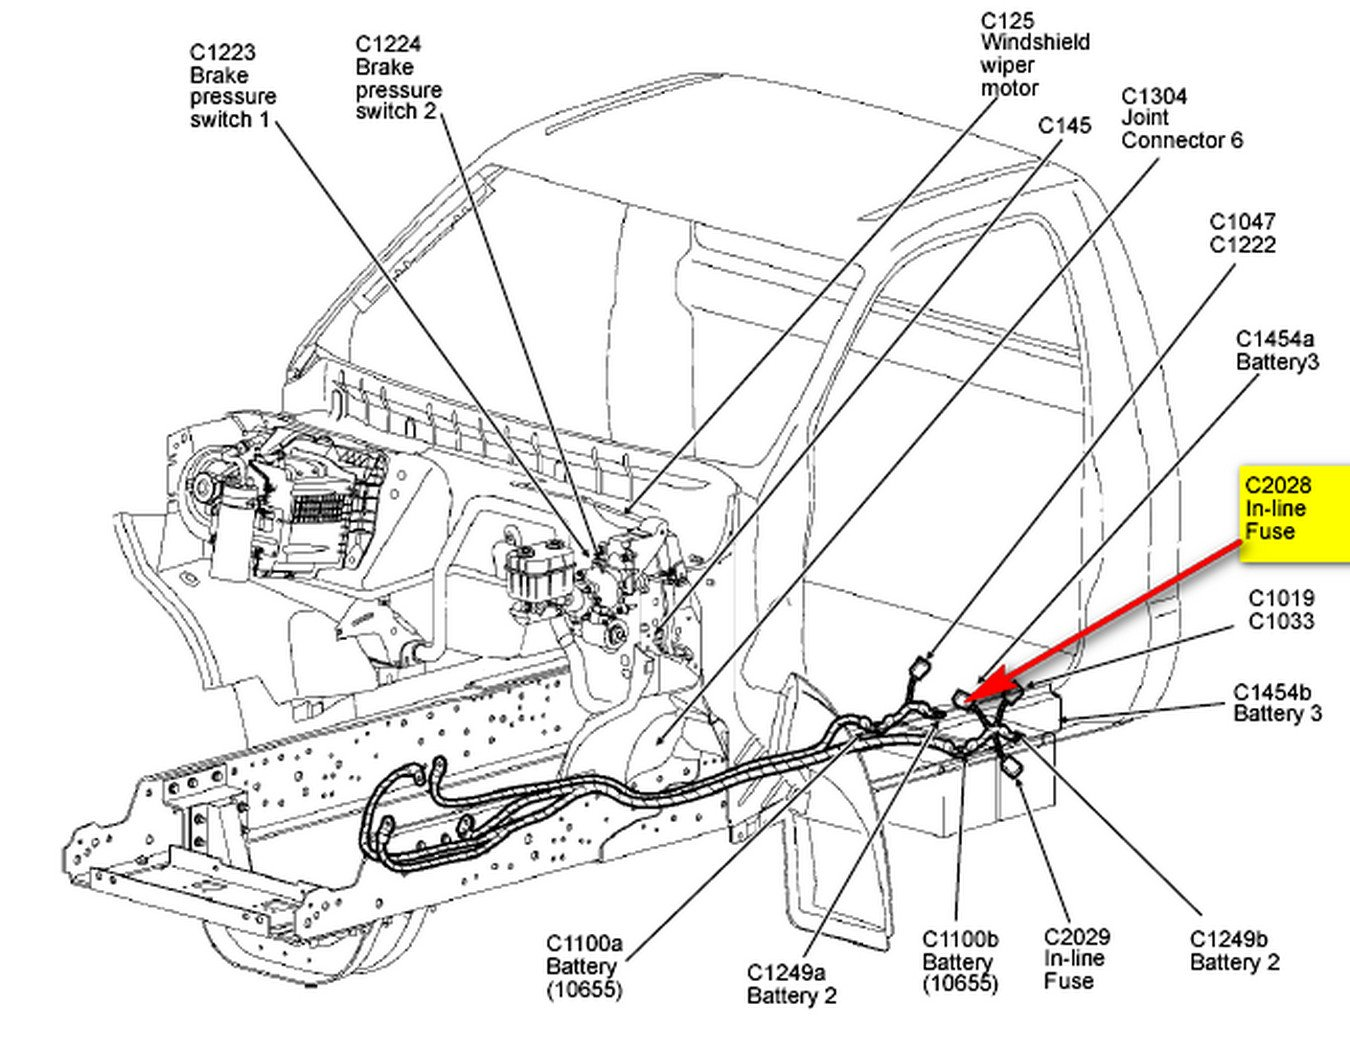 01 Ford F650 Throttle Wiring | mayor-revolution Wiring Diagram ID -  mayor-revolution.ilfrantoiodelleidee.it | Ford F650 Transmission Wiring |  | wiring diagram library